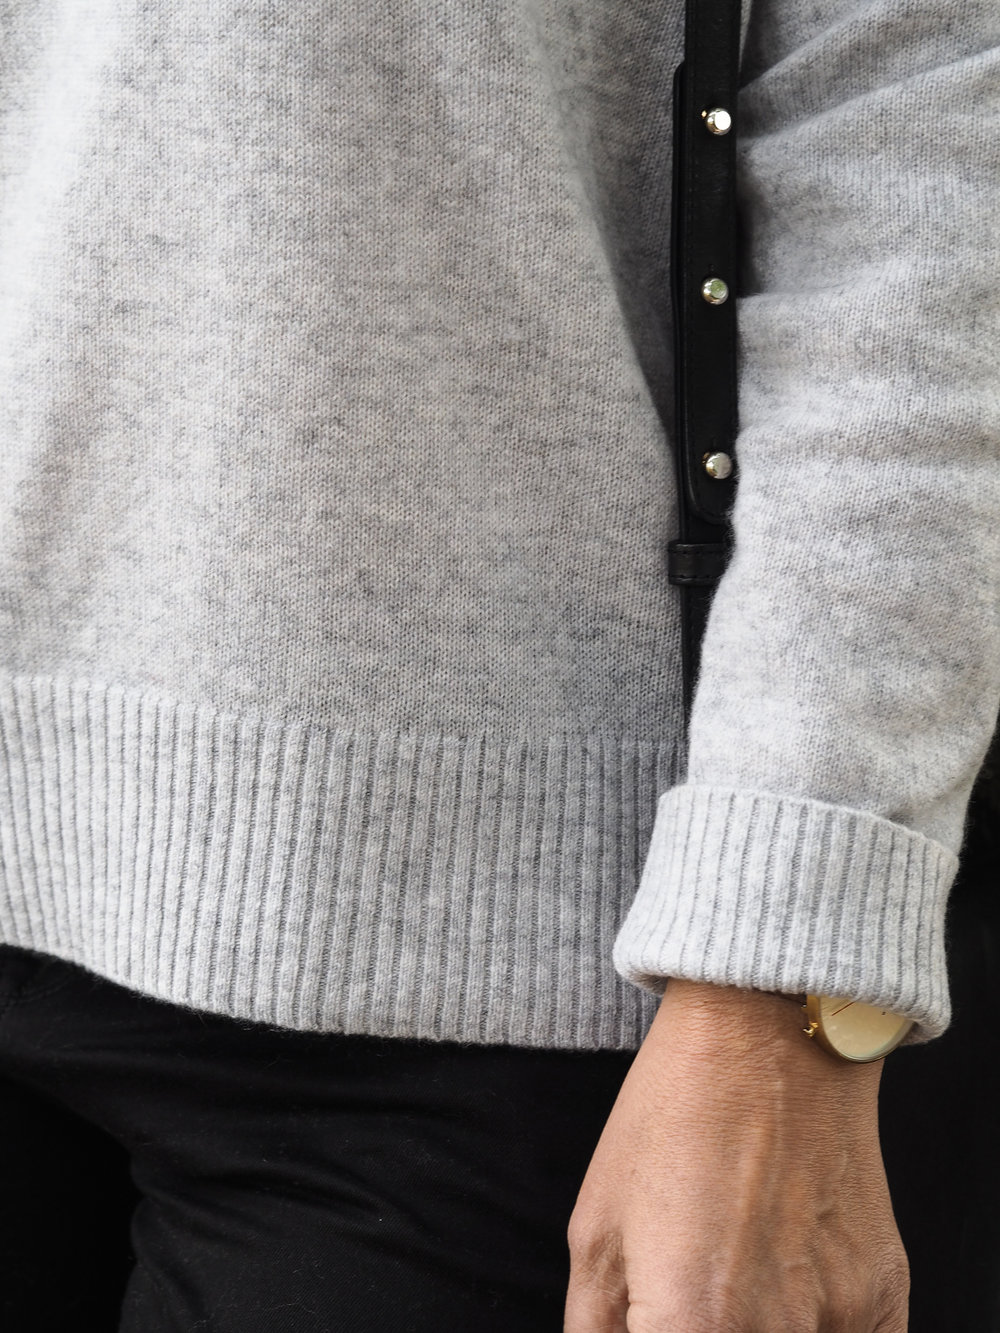 Grey cashmere sweater by The White Company | Design Hunter